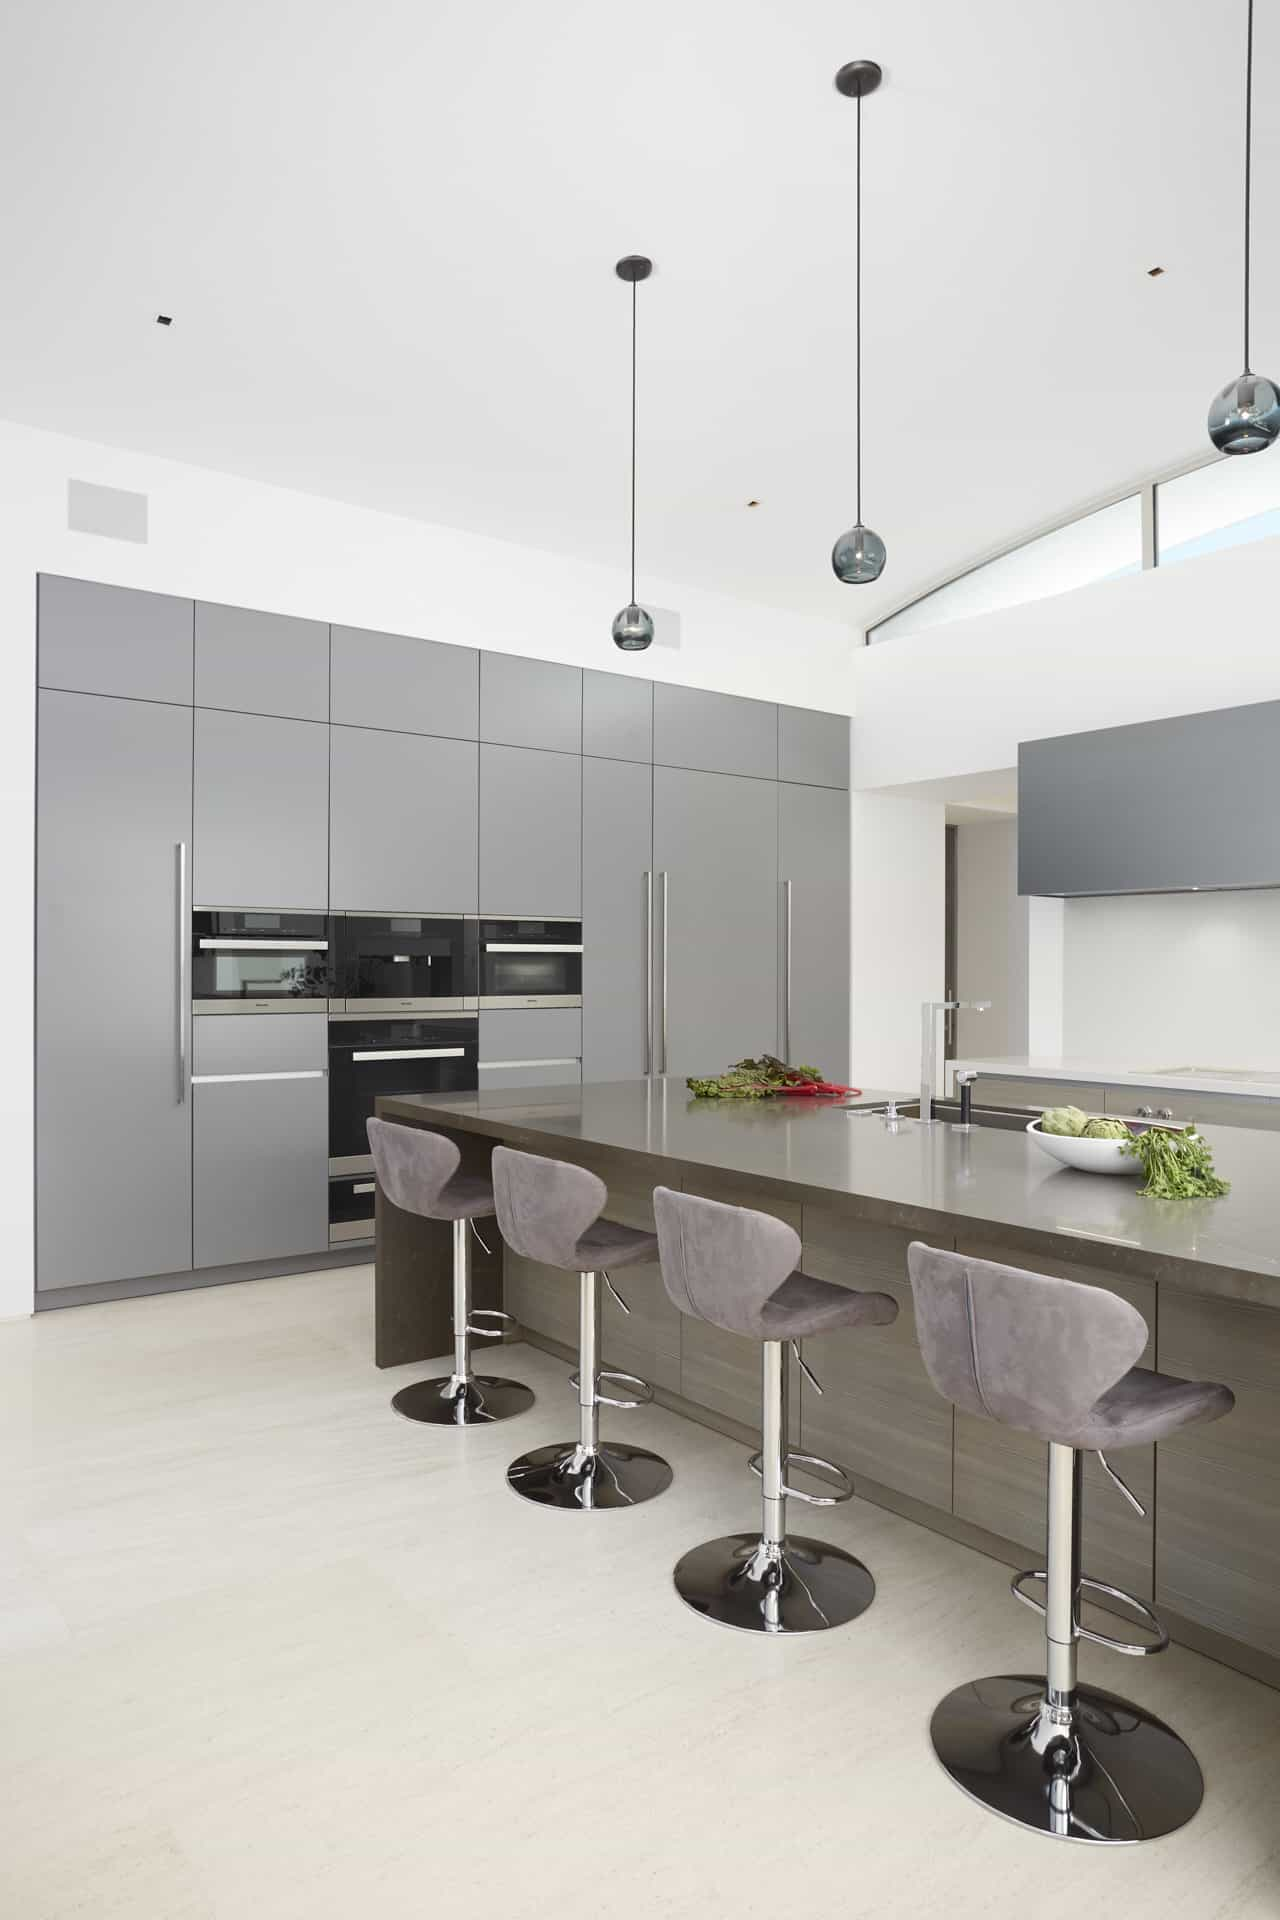 Main kitchen's in Pine Grey Decor and Custom Matt lacquer with breakfast bar and Miele appliances